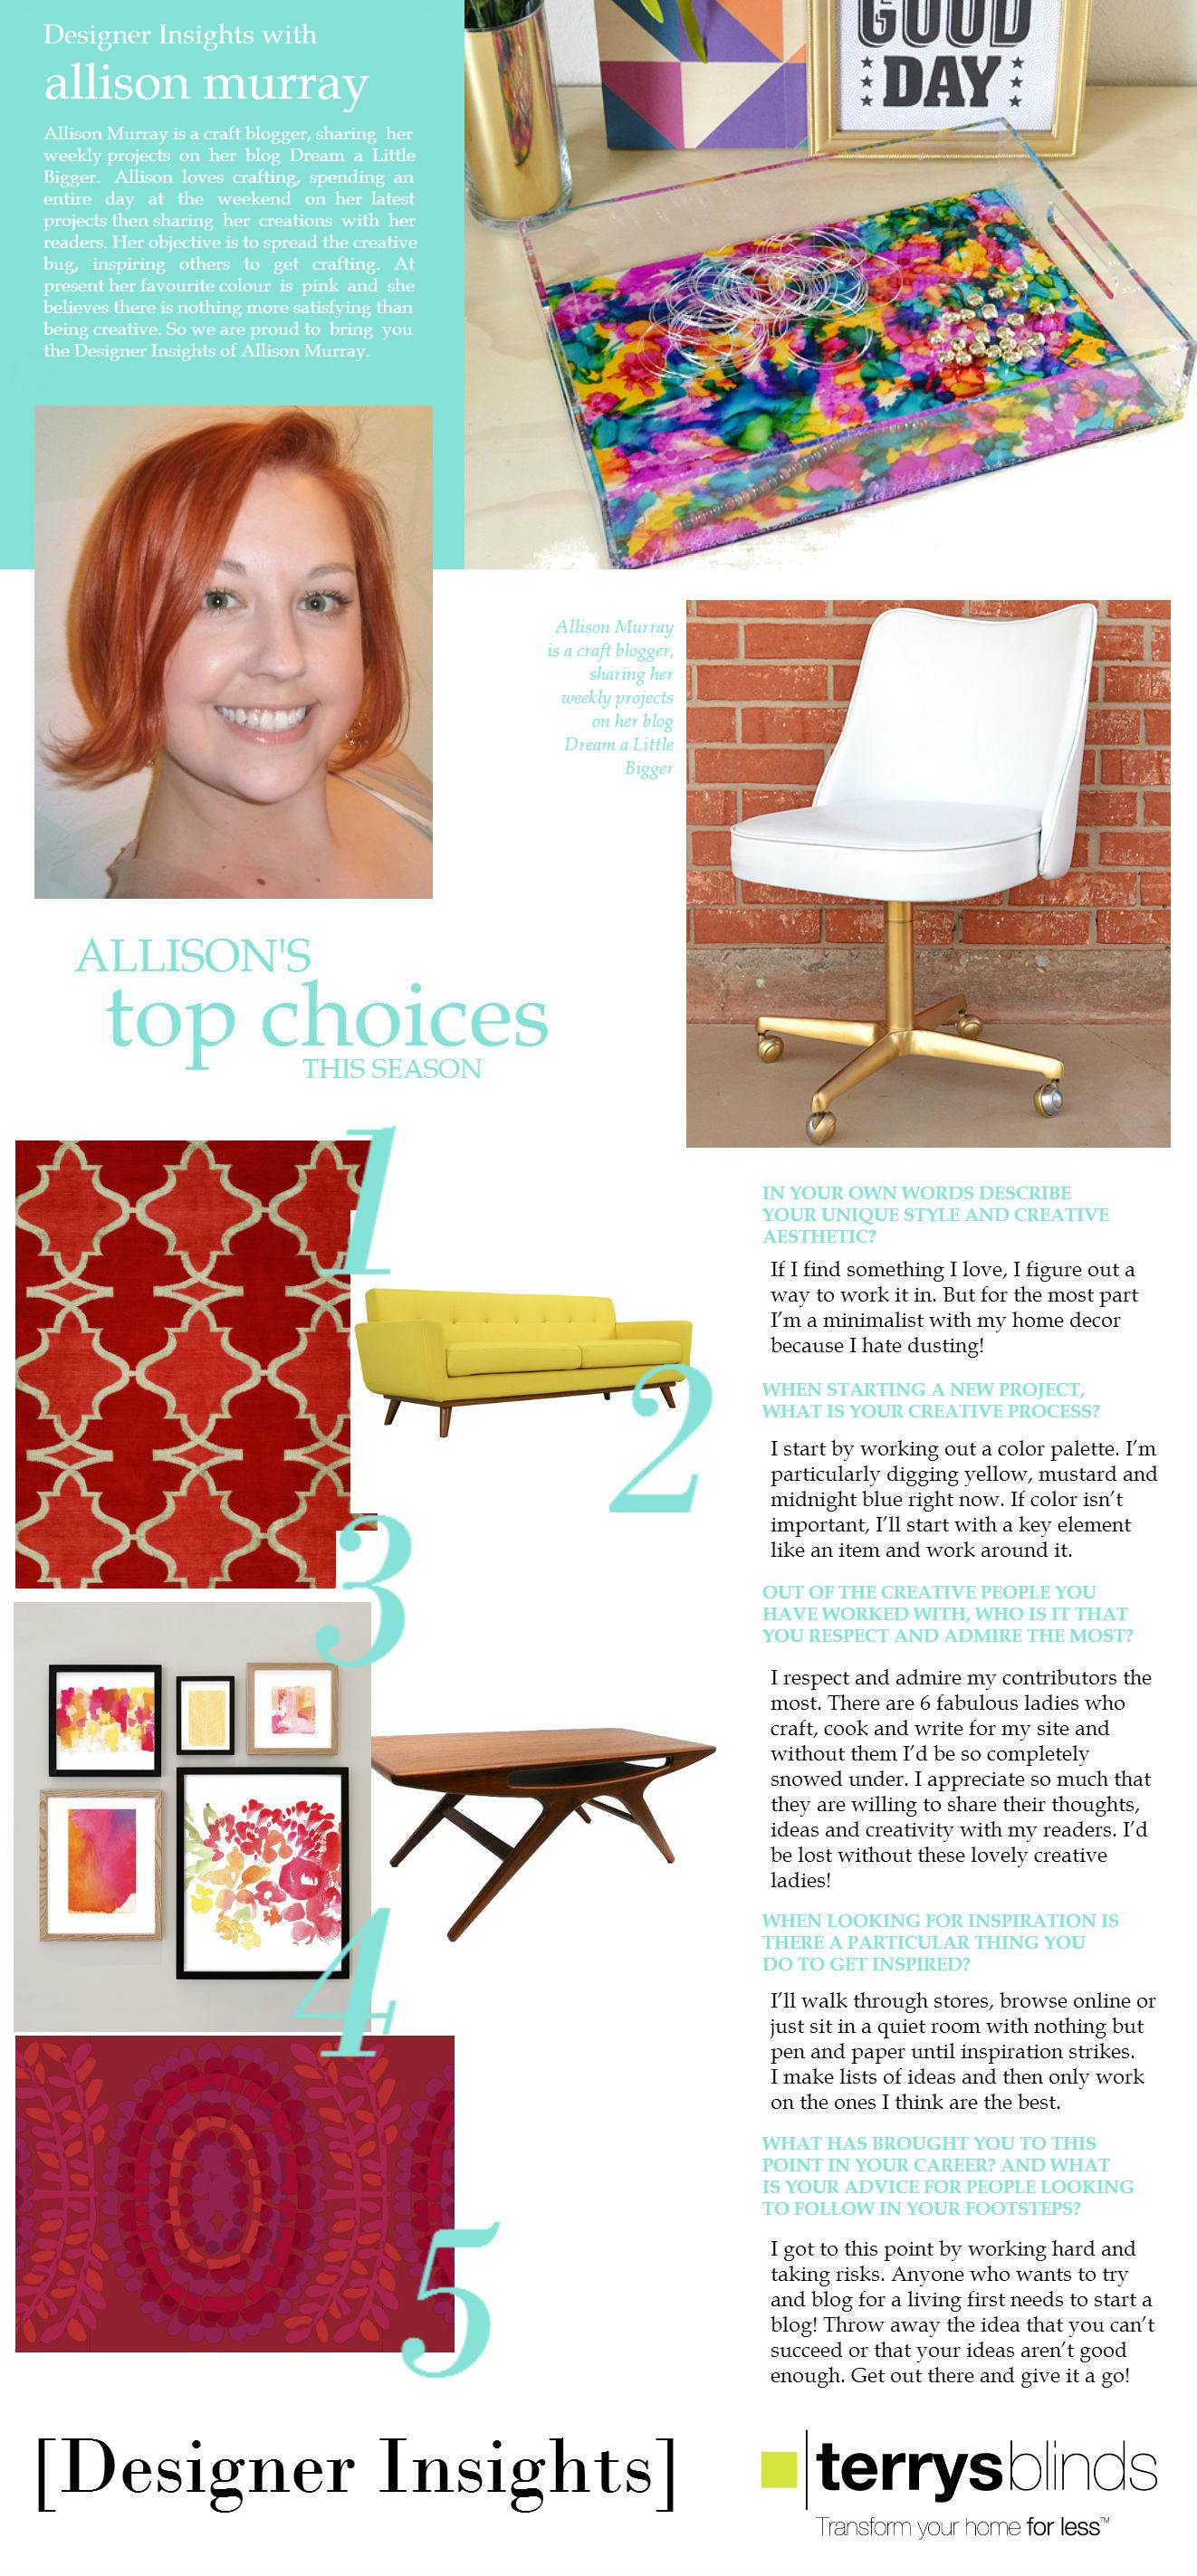 Designer Insights - Allison Murray